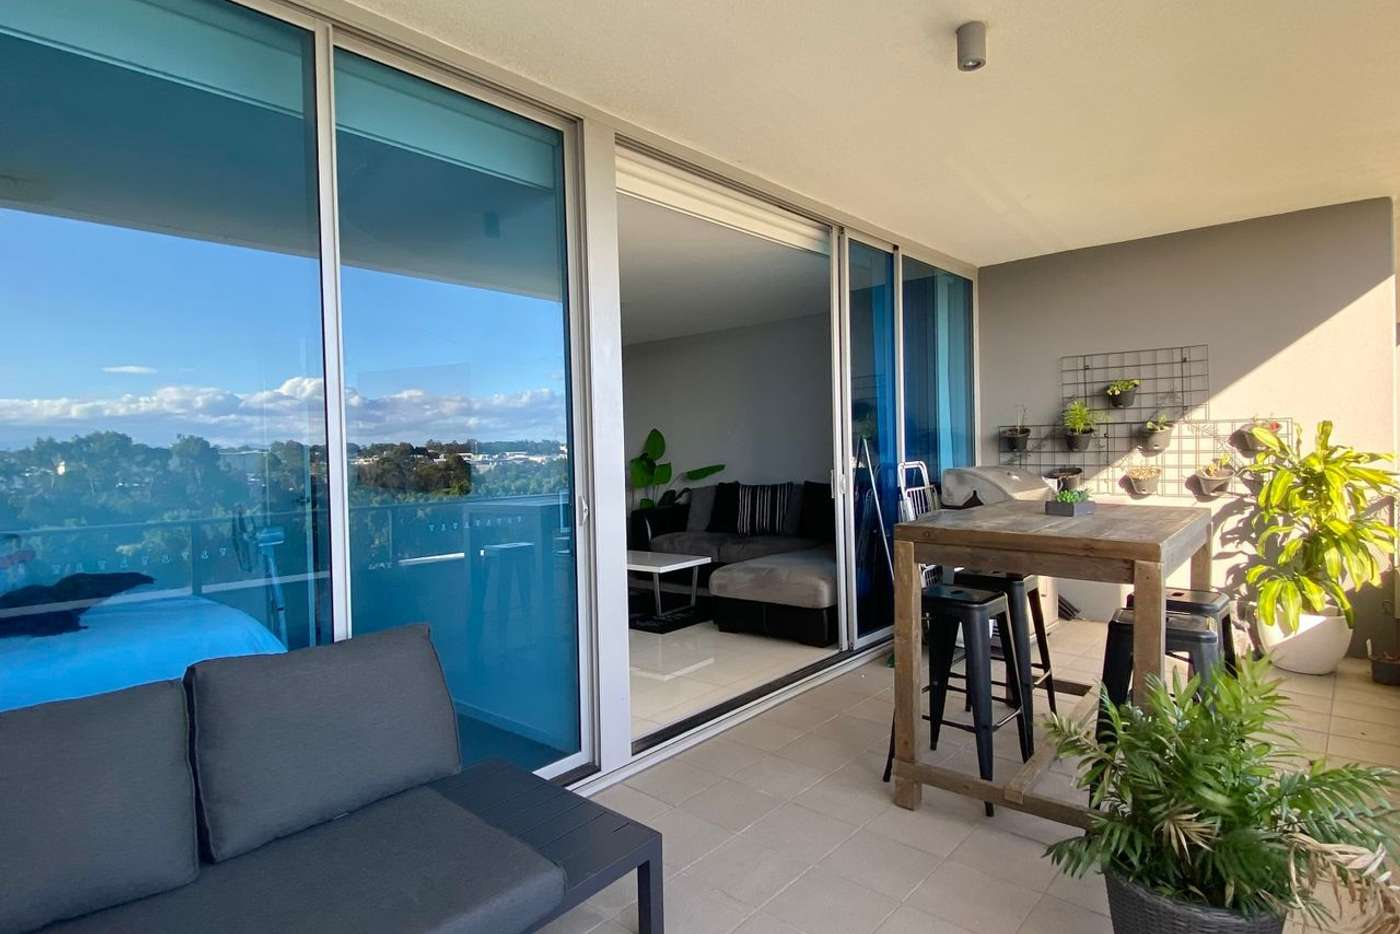 Main view of Homely apartment listing, 507/11 Compass Drive, Biggera Waters QLD 4216